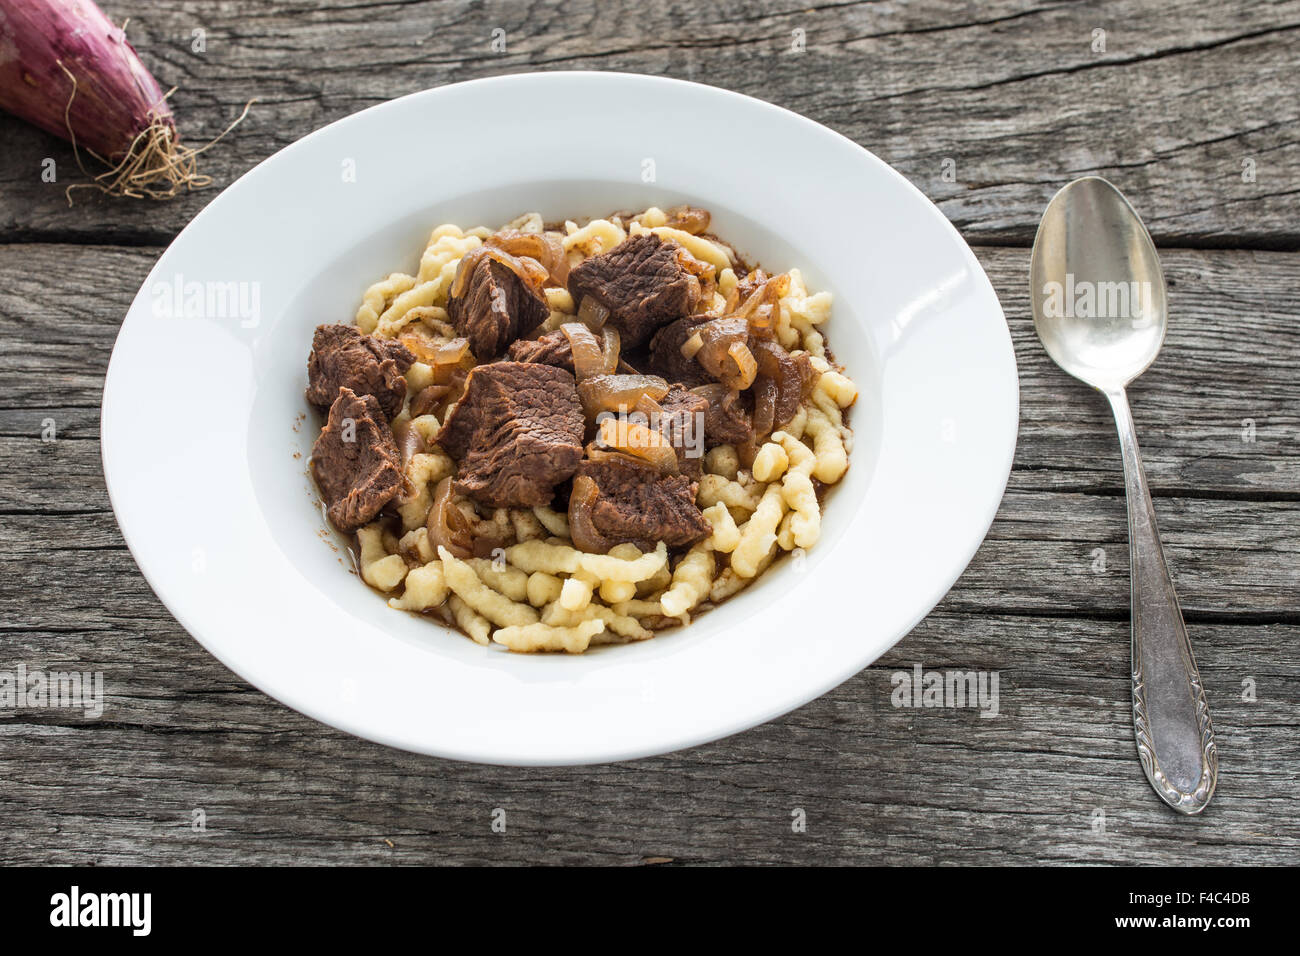 Stock Photo White Plate Of Beef Goulash With Swabian Noodles